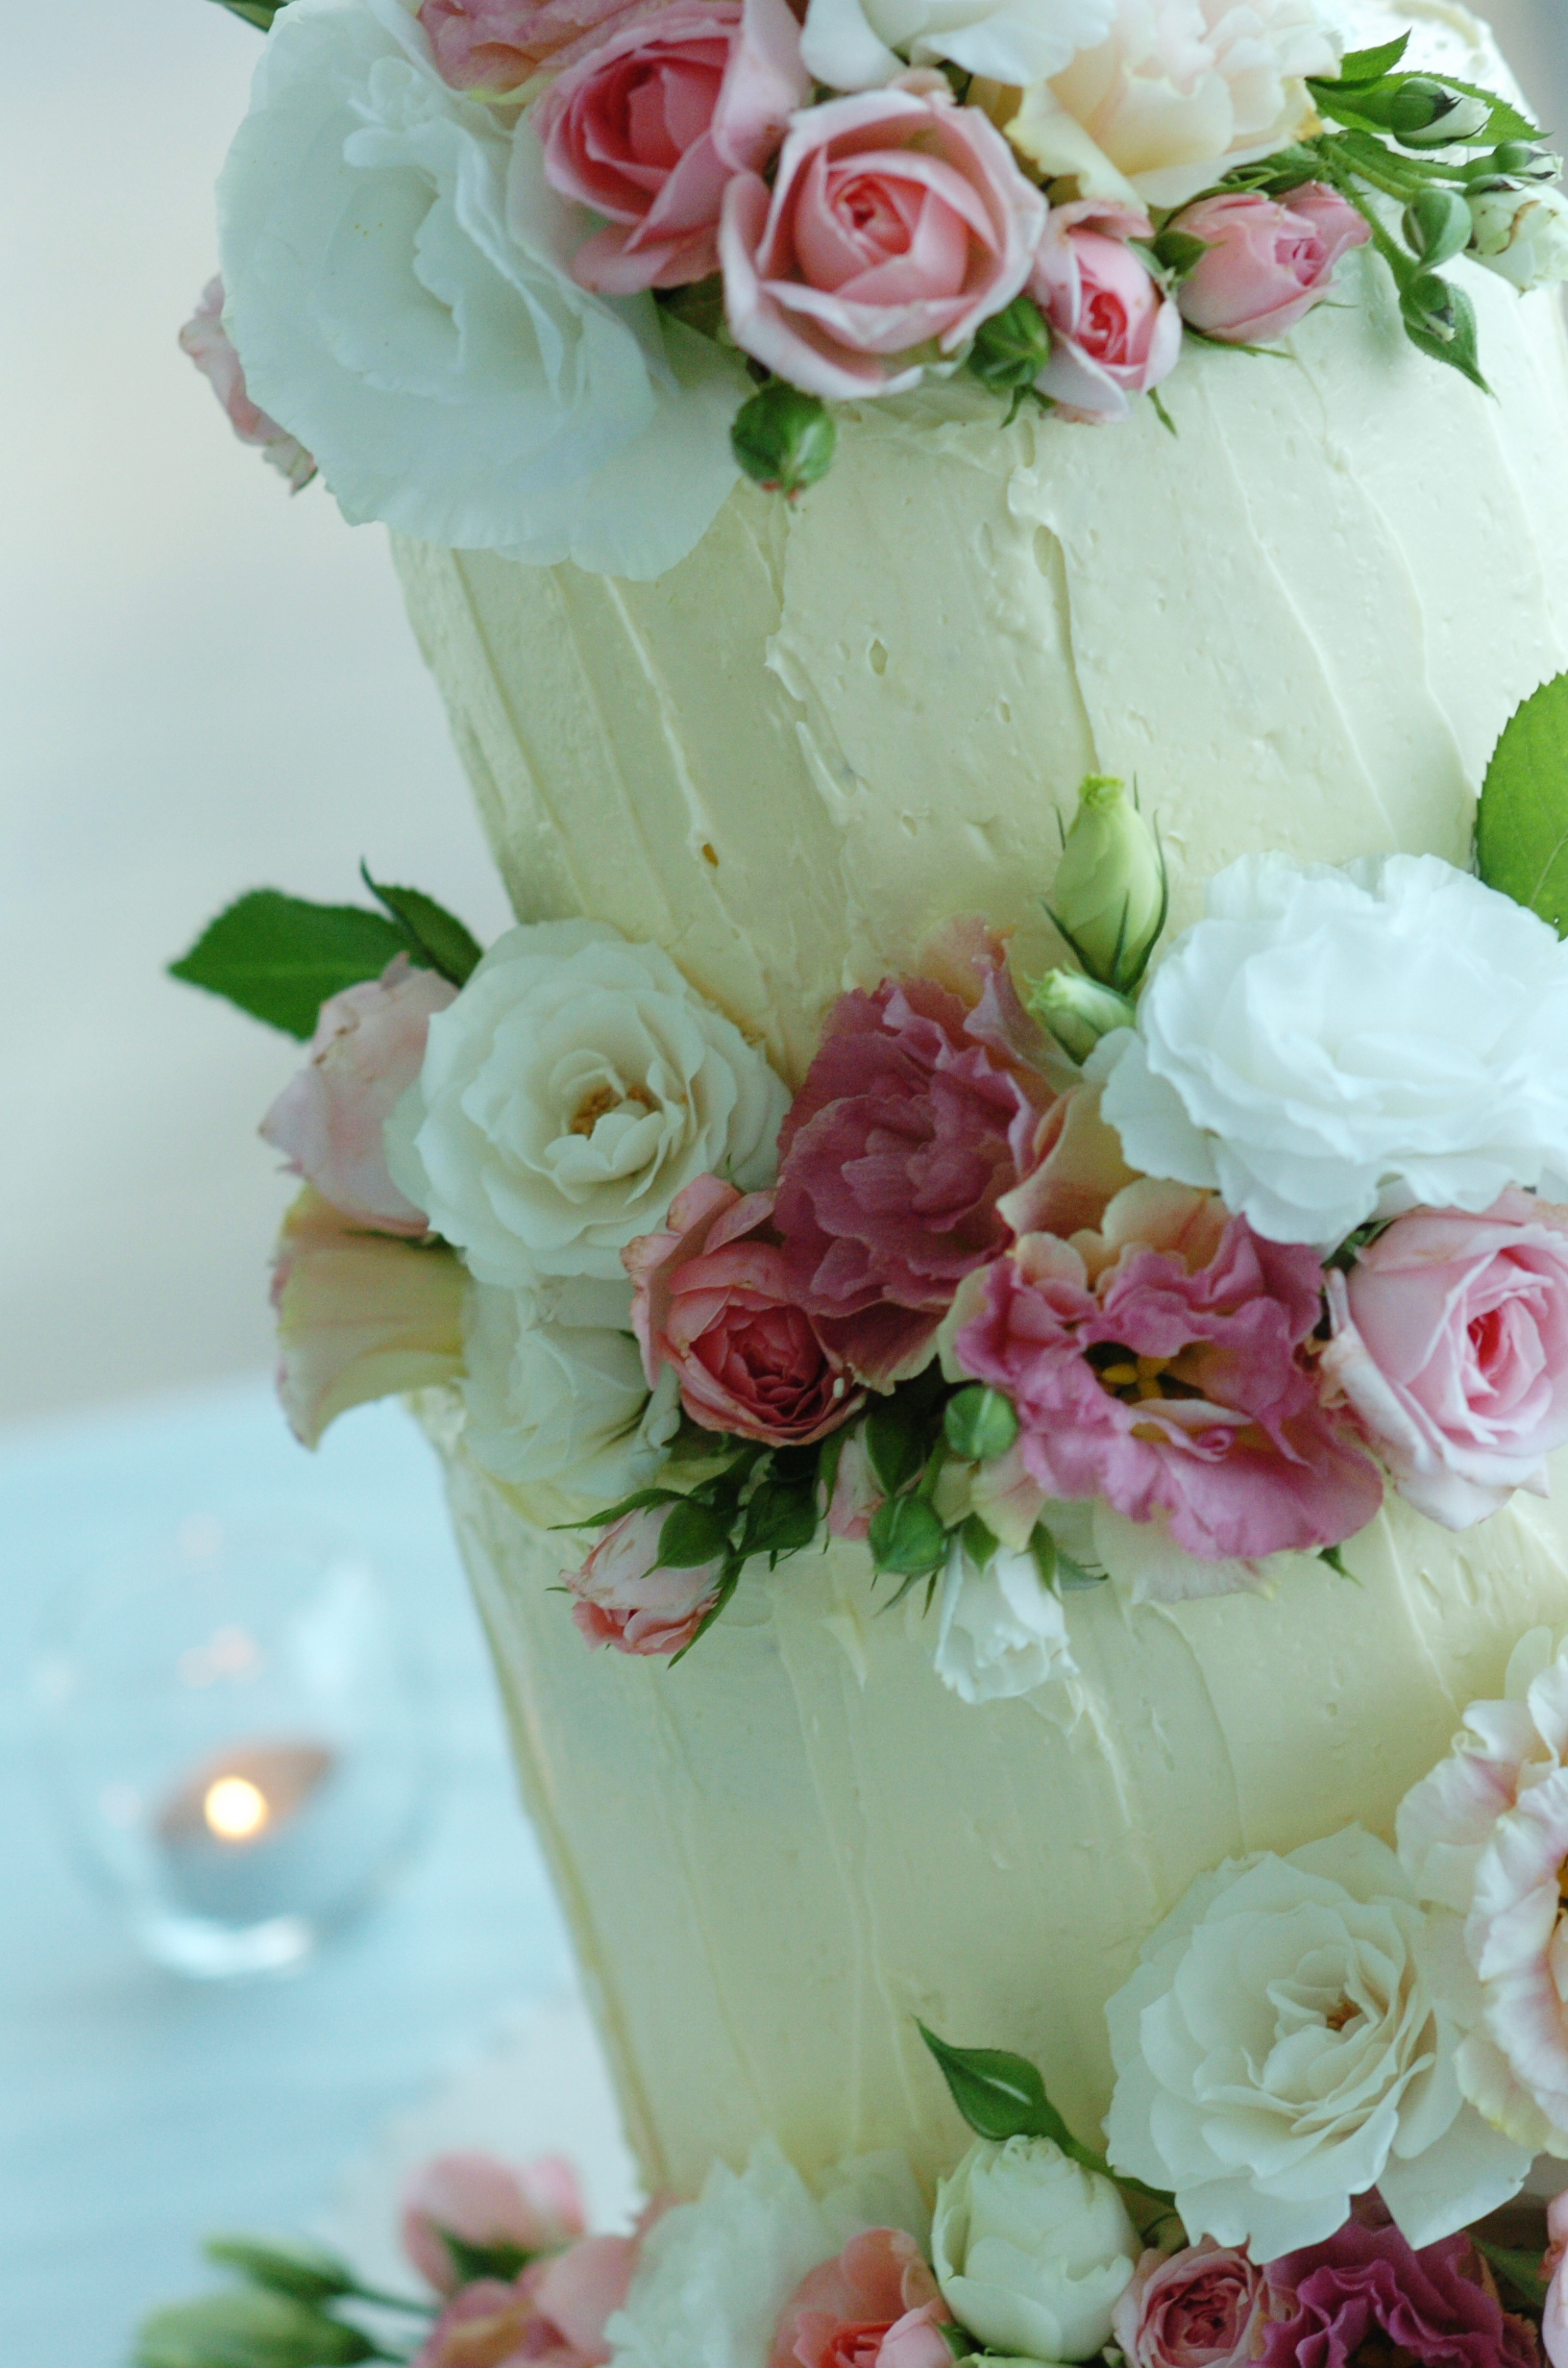 this is not a competition but the offer of a free wedding cake to the value